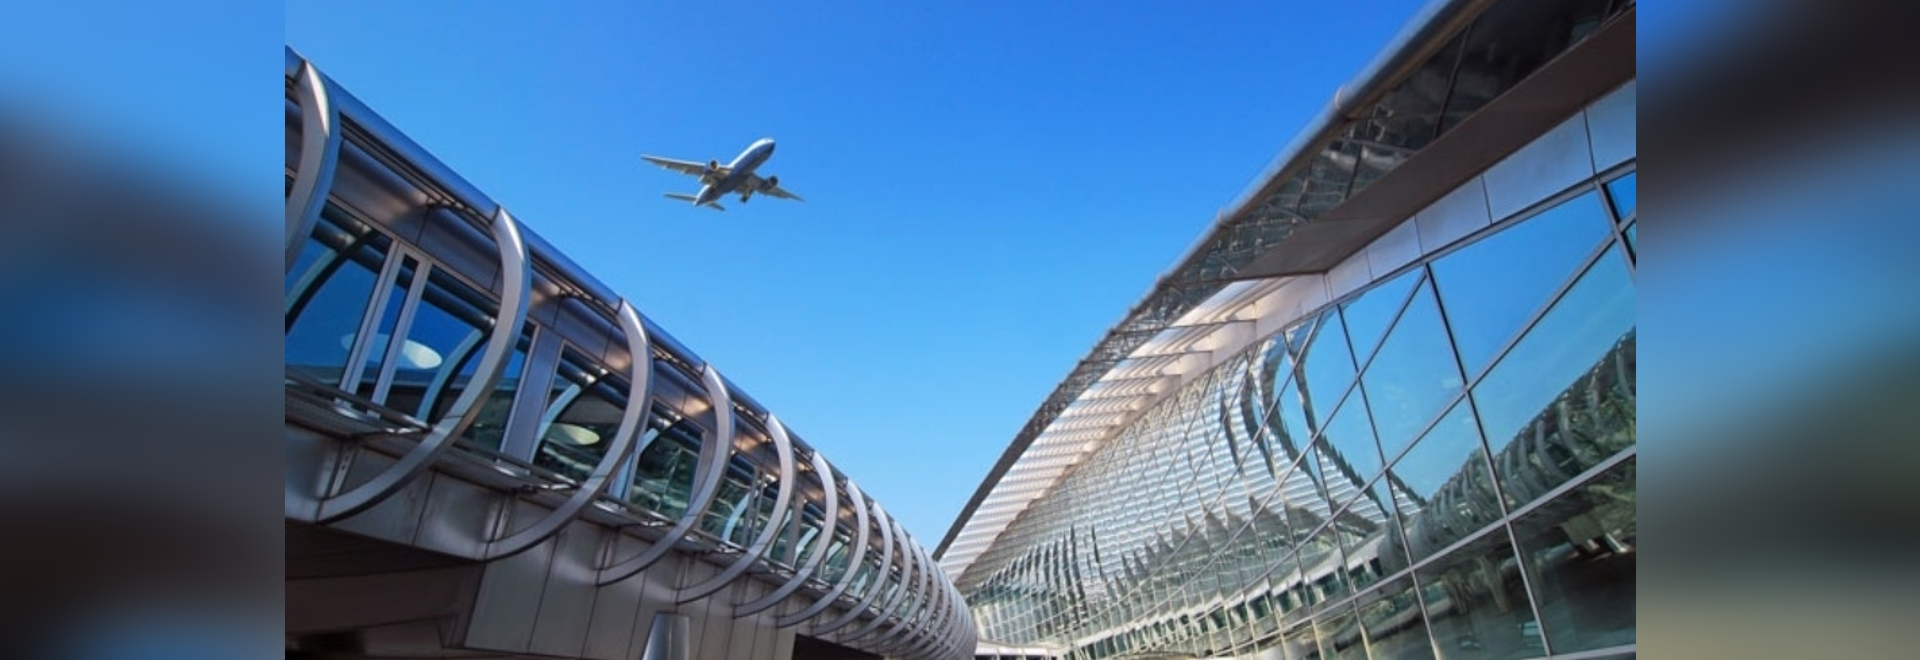 Incheon becomes first airport to achieve ACI Customer Experience Accreditation Level 4